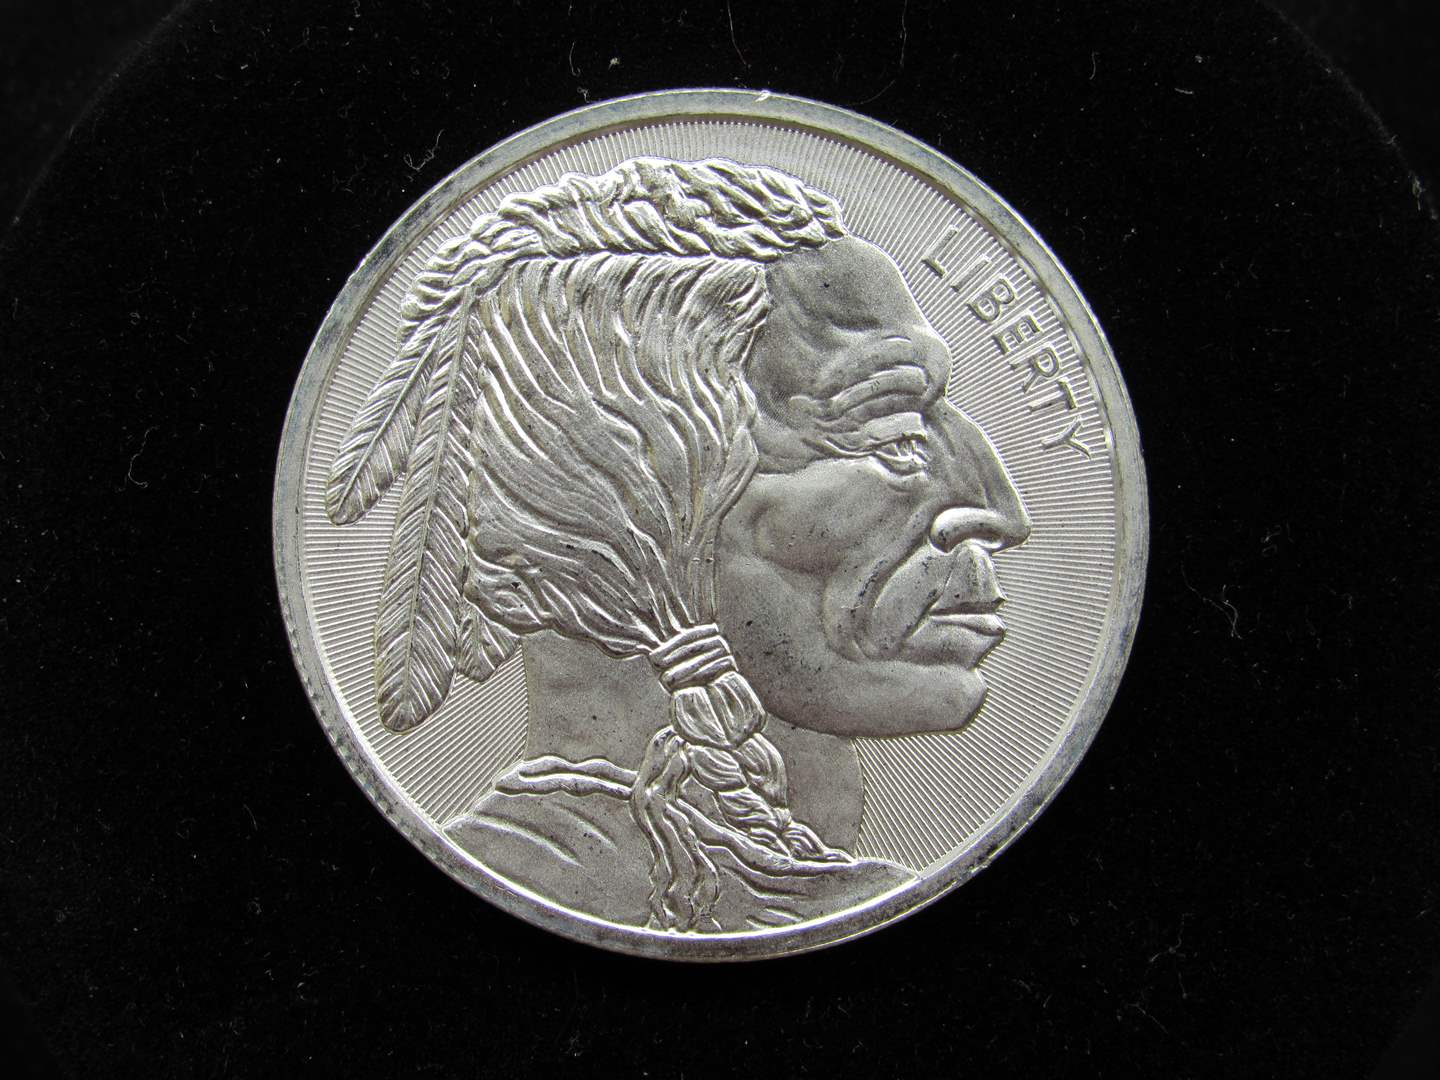 Lot # 125  Indian & Buffalo one Troy Ounce silver round .999 BU condition (main image)